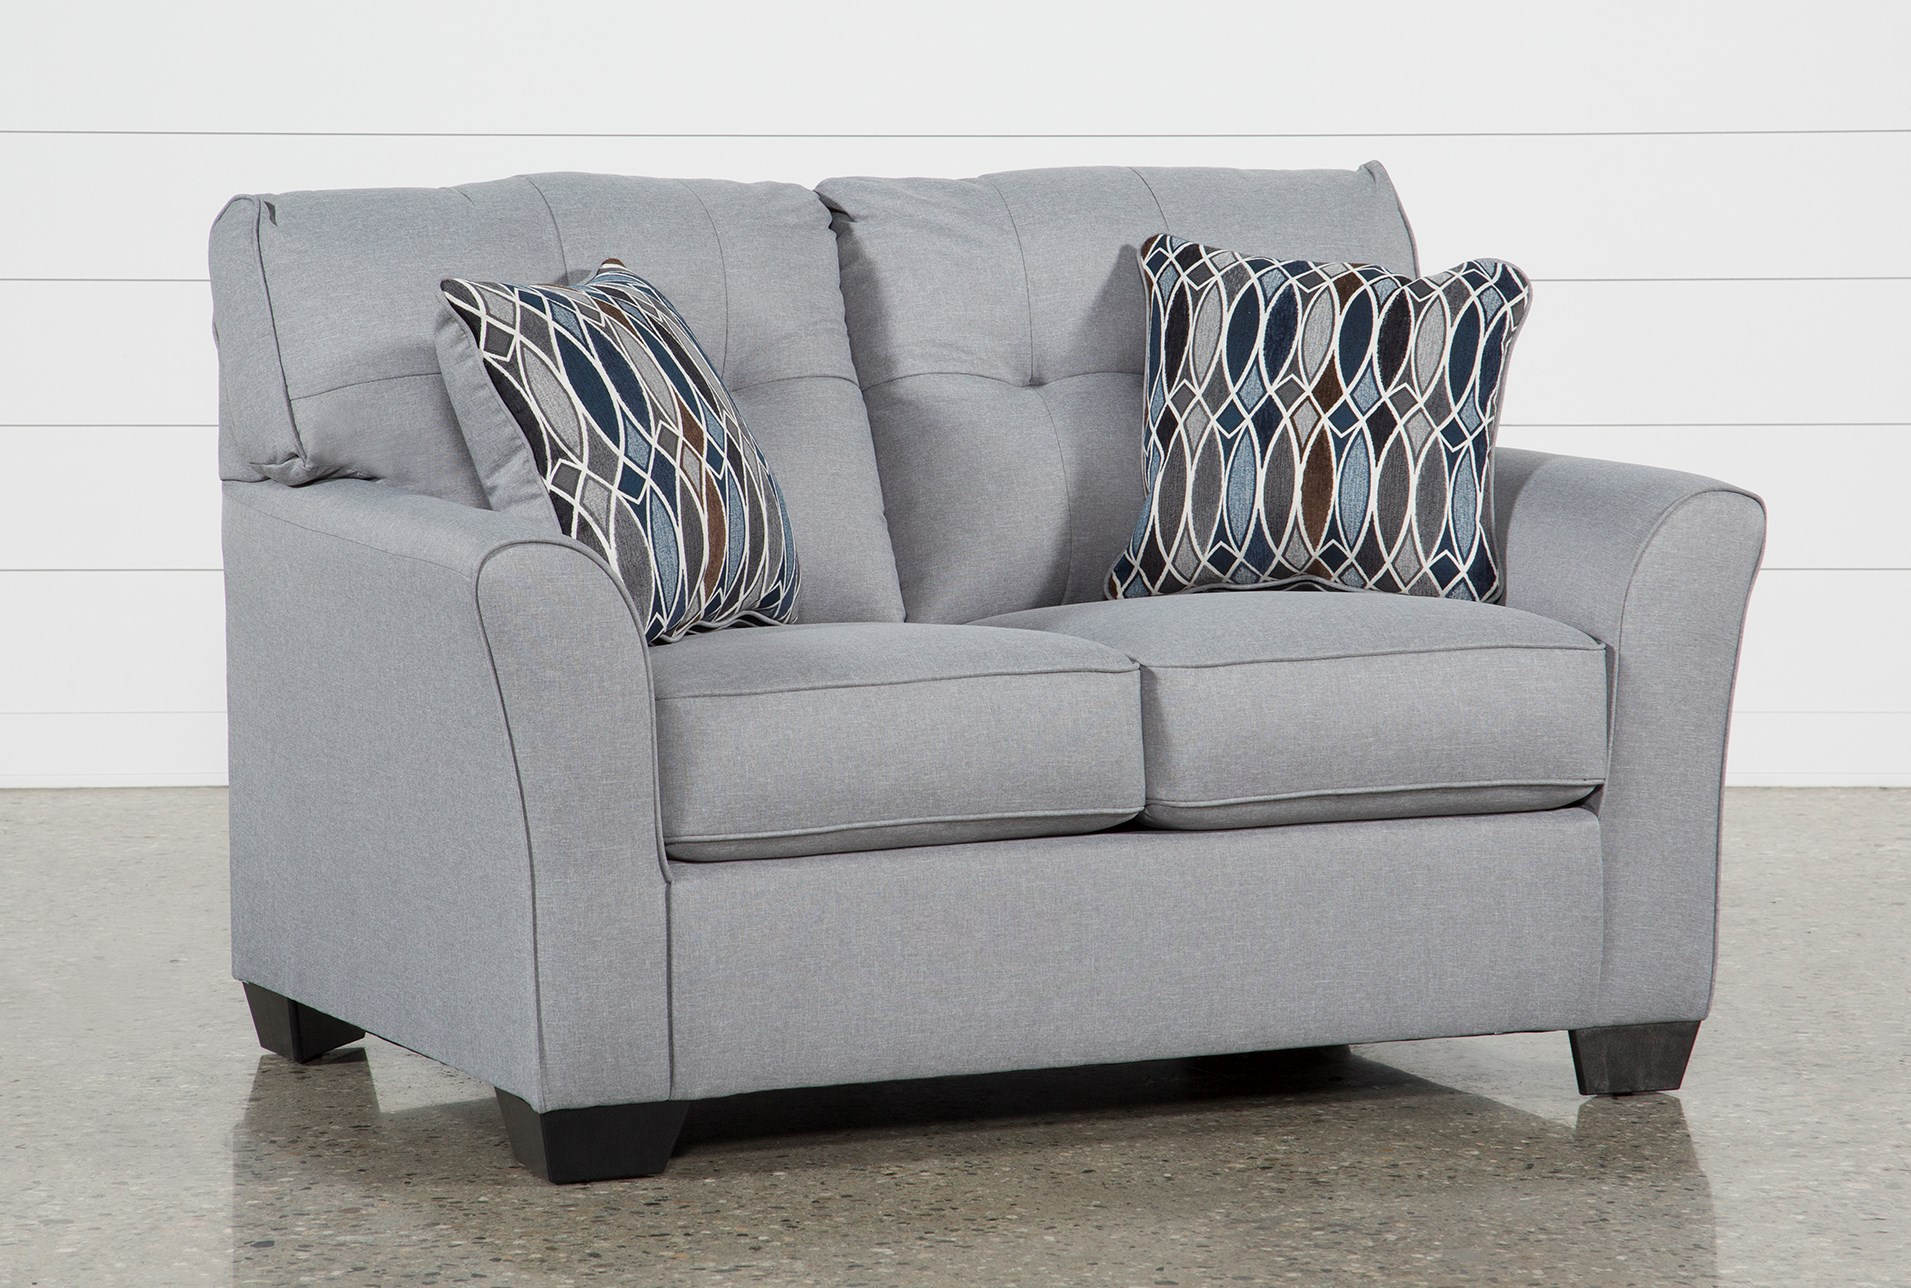 Chilkoot Smoke Loveseat Qty 1 Has Been Successfully Added To Your Cart